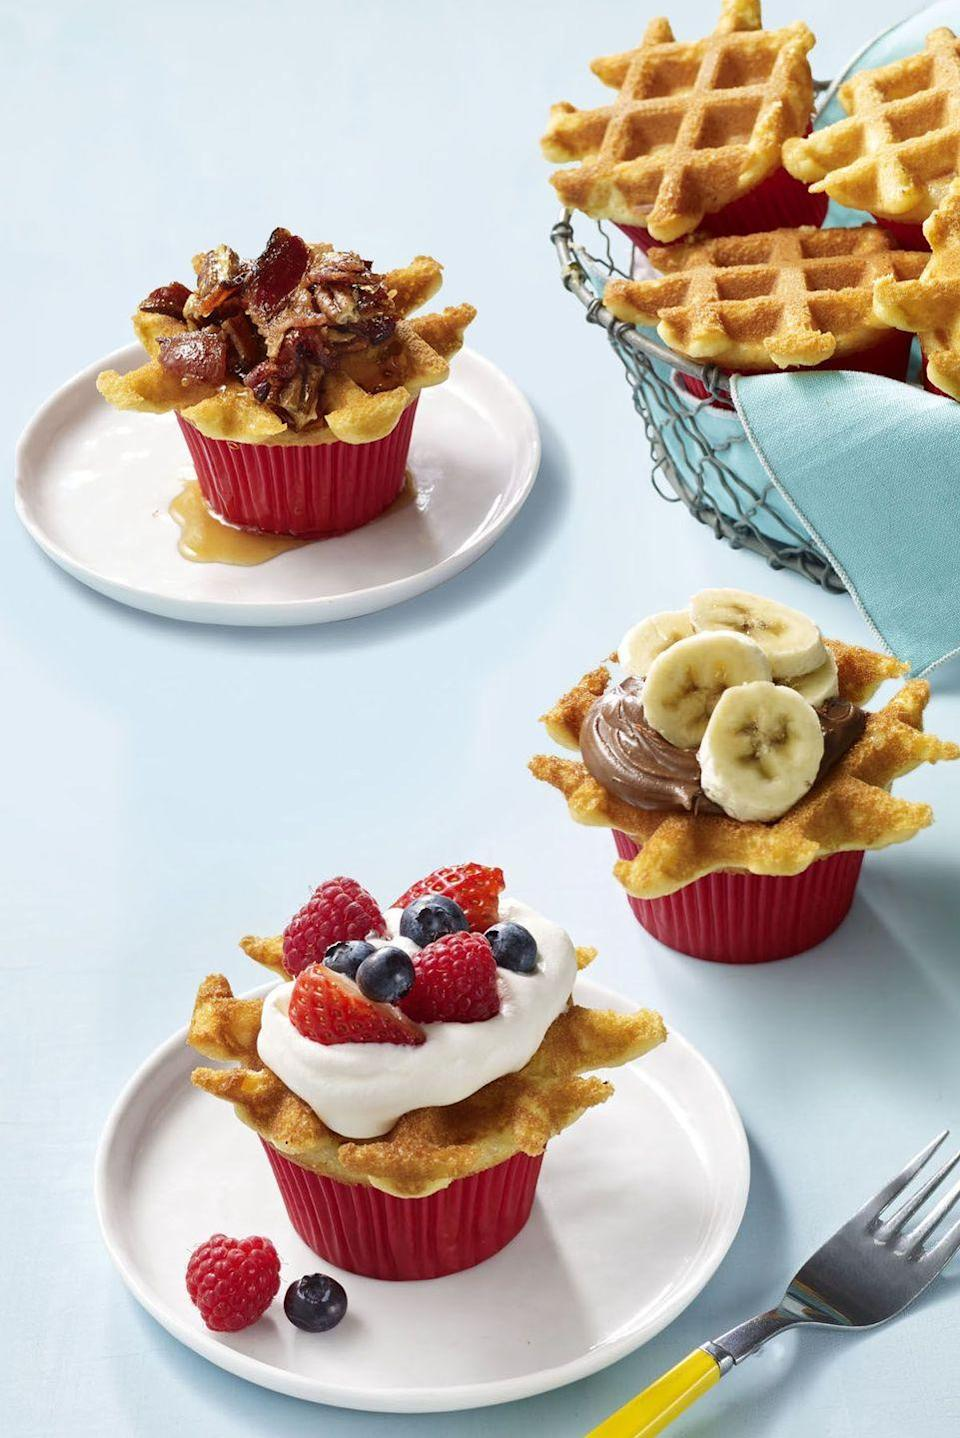 """<p>If your 4th of July bash starts early in the day, create a toppings table where kids (and adults) can decorate these individual waffle cakes.</p><p><em><strong><a href=""""https://www.womansday.com/food-recipes/food-drinks/recipes/a57925/wafflecakes-recipe/"""" rel=""""nofollow noopener"""" target=""""_blank"""" data-ylk=""""slk:Get the Wafflecakes recipe."""" class=""""link rapid-noclick-resp"""">Get the Wafflecakes recipe.</a></strong></em></p>"""